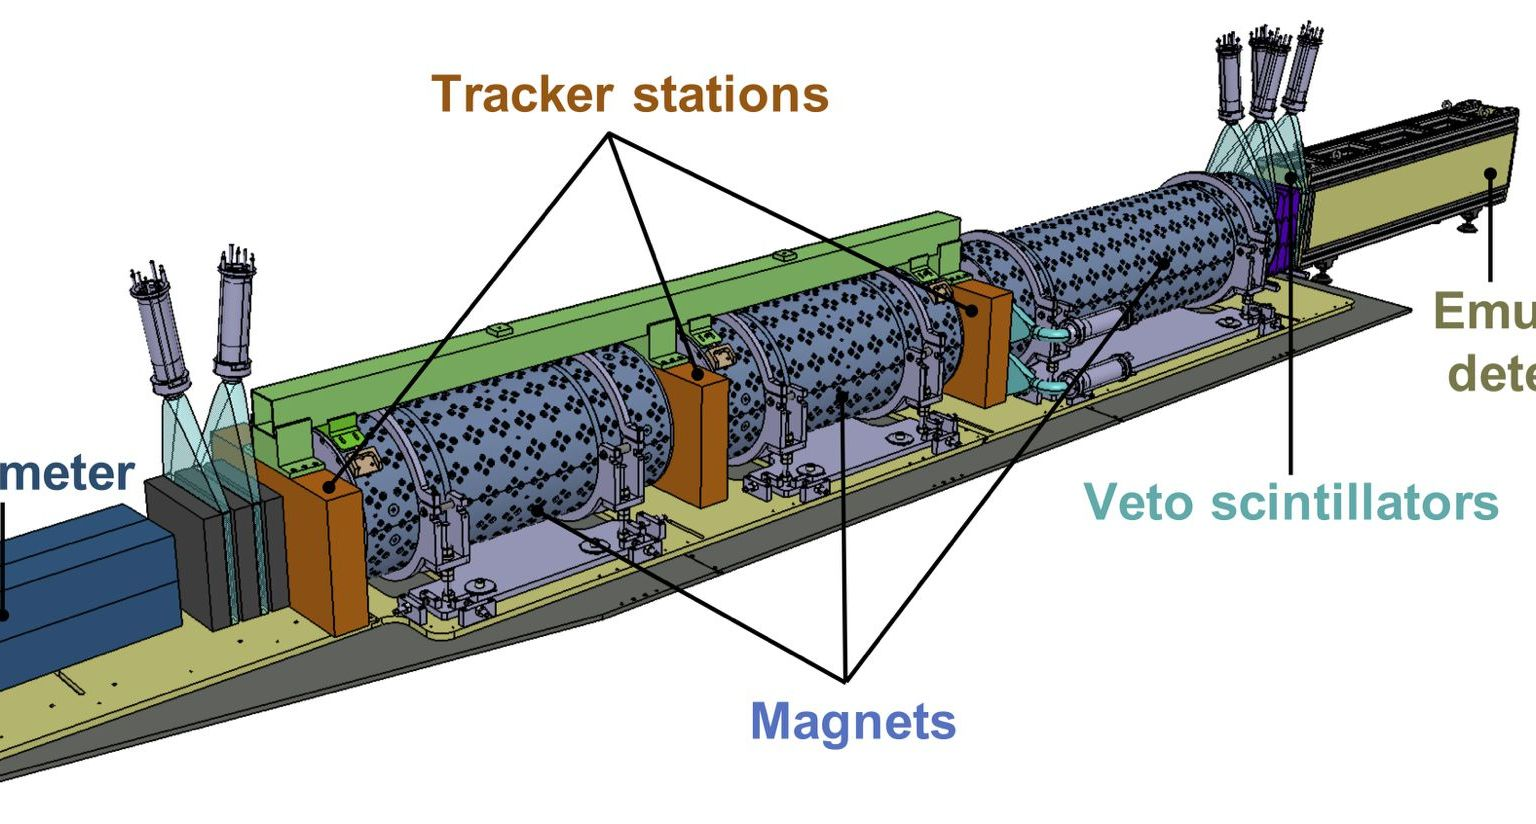 "Starting from the neighbouring ATLAS experiment, high-energy particles (100 GeV to several TeV) hit the FASER detector from the right. Four ""veto"" scintillators eliminate the muons contained in the particle beam, as they are of no interest to the FASER experiment. When particles subsequently decay in the 'decay volume', the decay products can then be detected in the three tracking stations of the spectrometer. Each tracking station consists of three silicon layers for the detection of charged particles. Uncharged particles (e.g. photons) are detected by the calorimeter at the end of the detector. The trajectories of the decay products  and their properties can be reconstructed from the measured data. The emulsion detector (FASERν) at the front of the detector will measure interactions of high energy collider neutrinos. In contrast to the FASER experiment's main agenda — detecting new particles — FASERν aims to provide cross-section measurements of neutrinos. Neutrinos are described in the Standard Model of article physics but many of the properties are not yet understood."